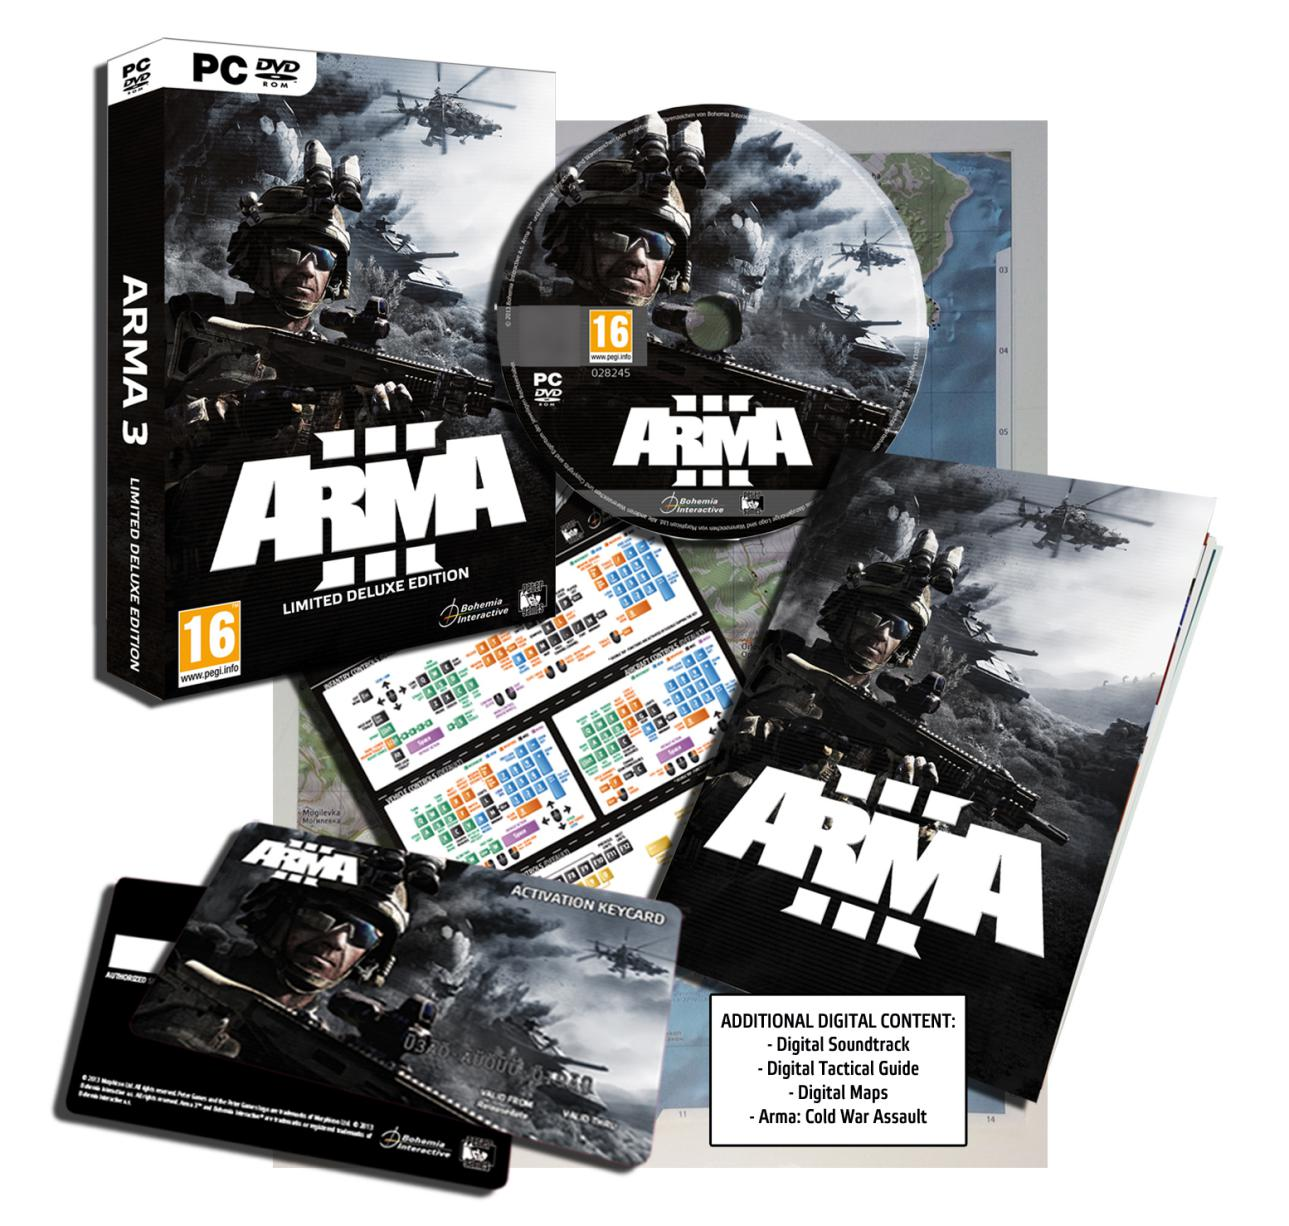 Arma 3 Limited Deluxe Edition